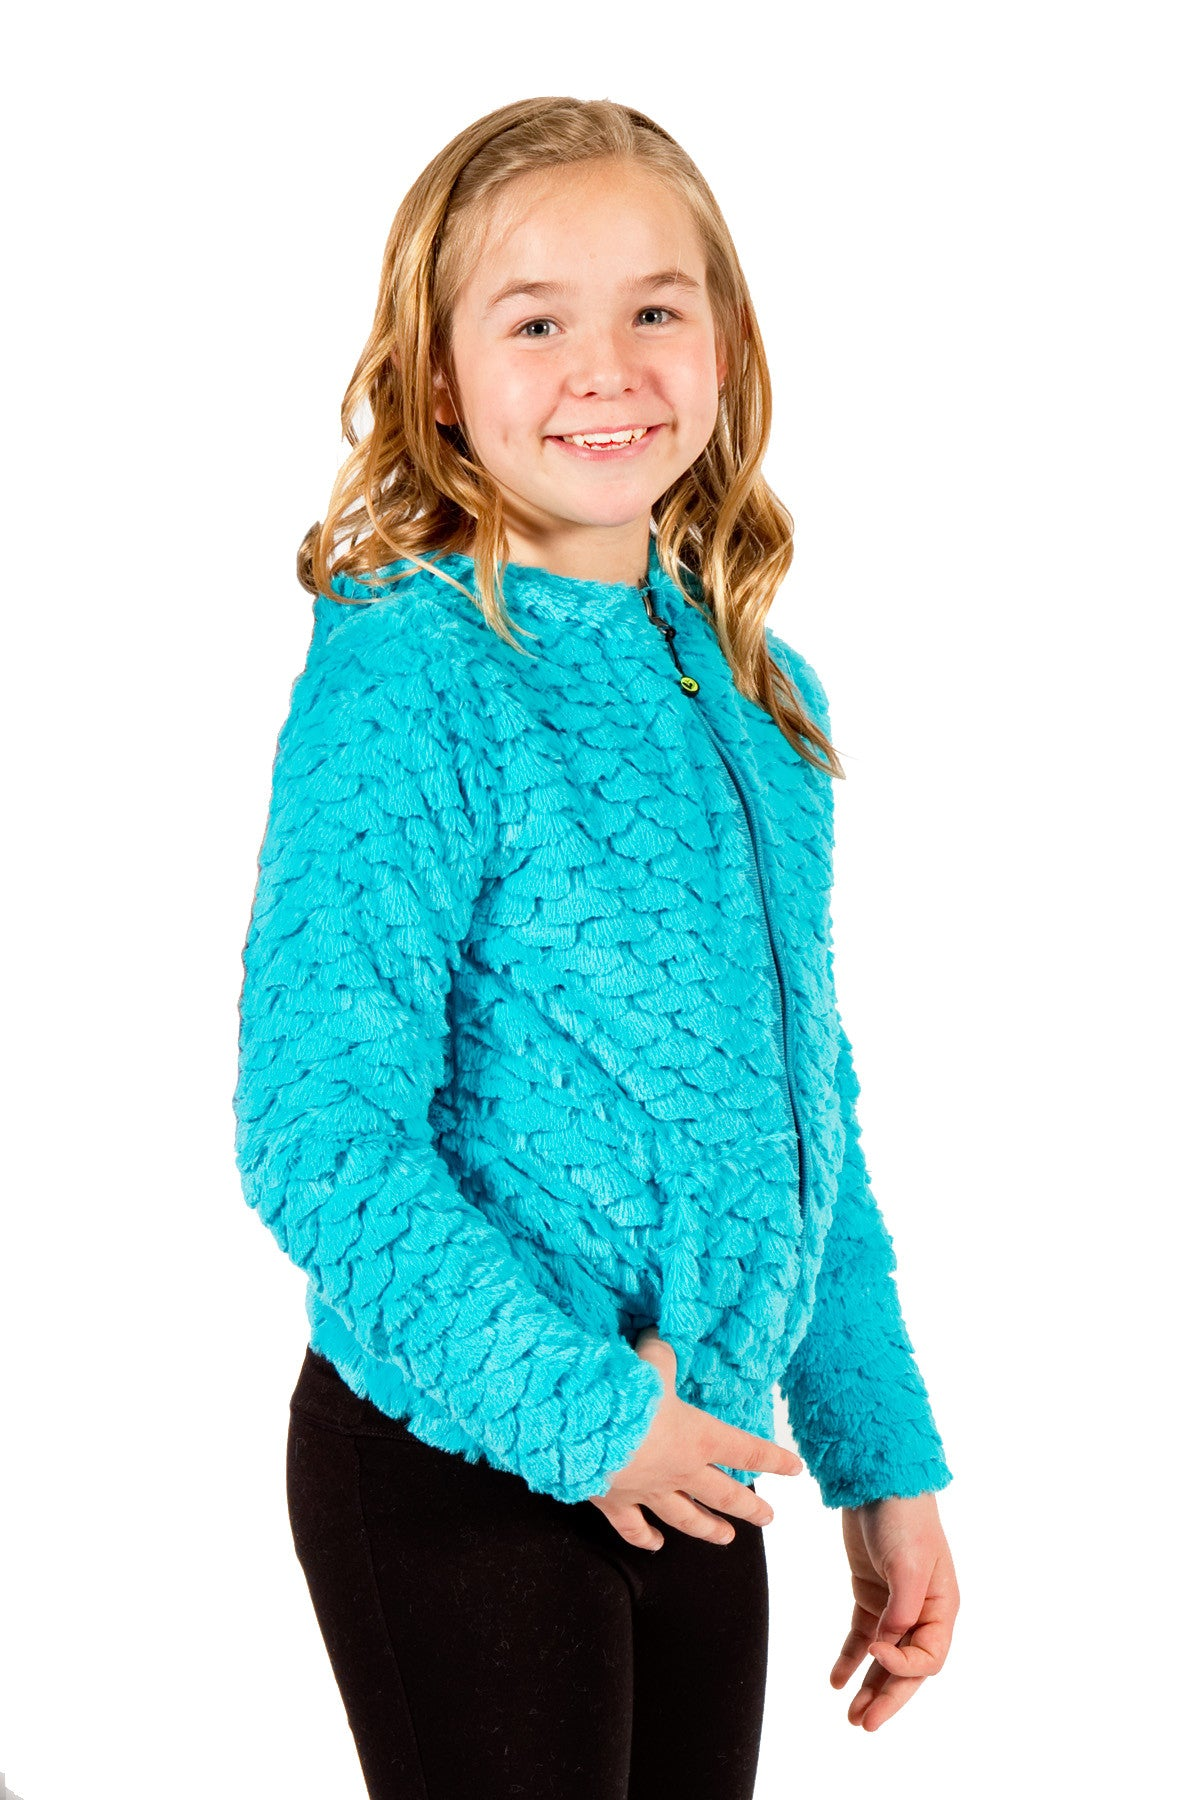 Pre Teens Swim Suit Bottom On Only Pictures: Cuddle Bubble Printed Minky Hoodie